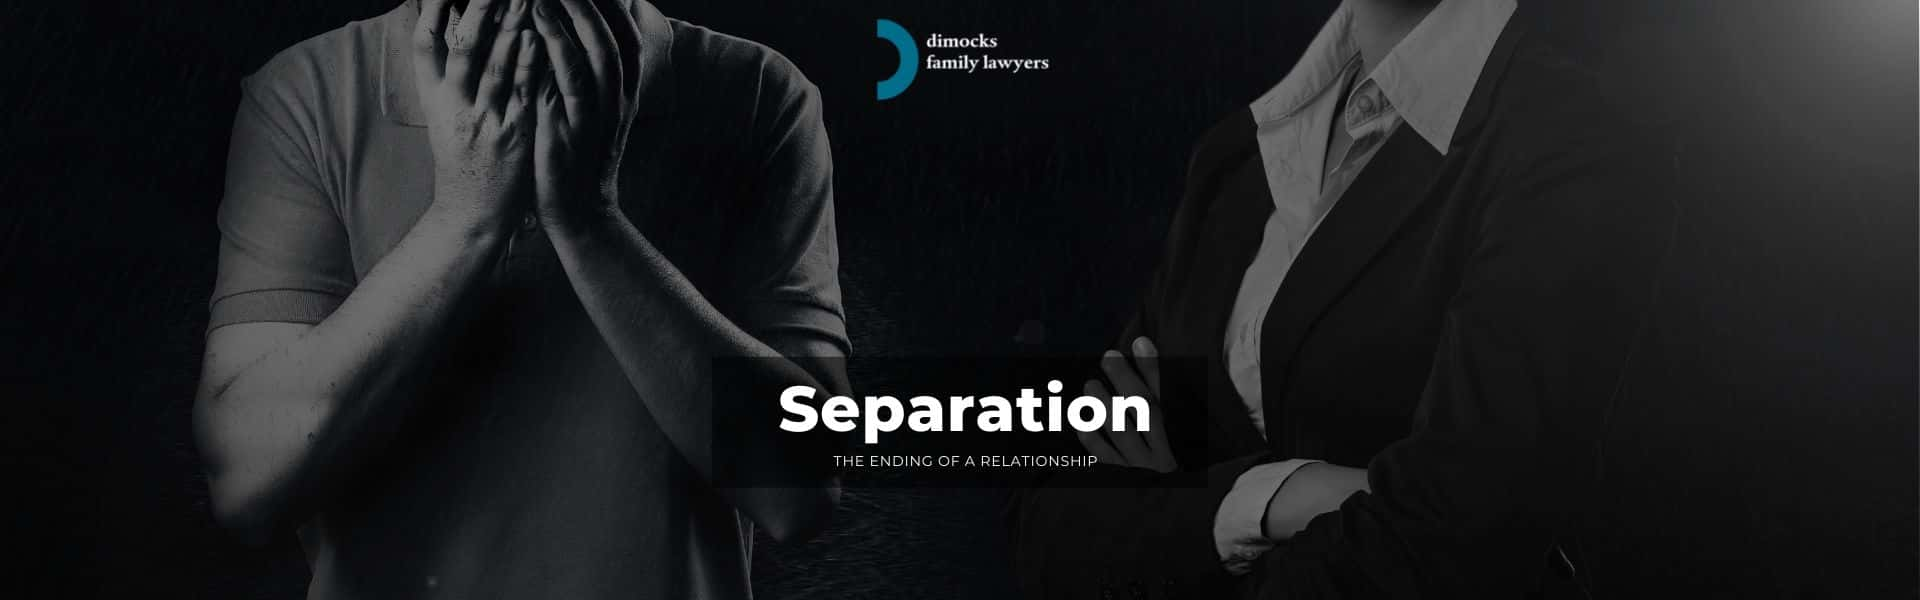 Separation Lawyer Sydney Family Law